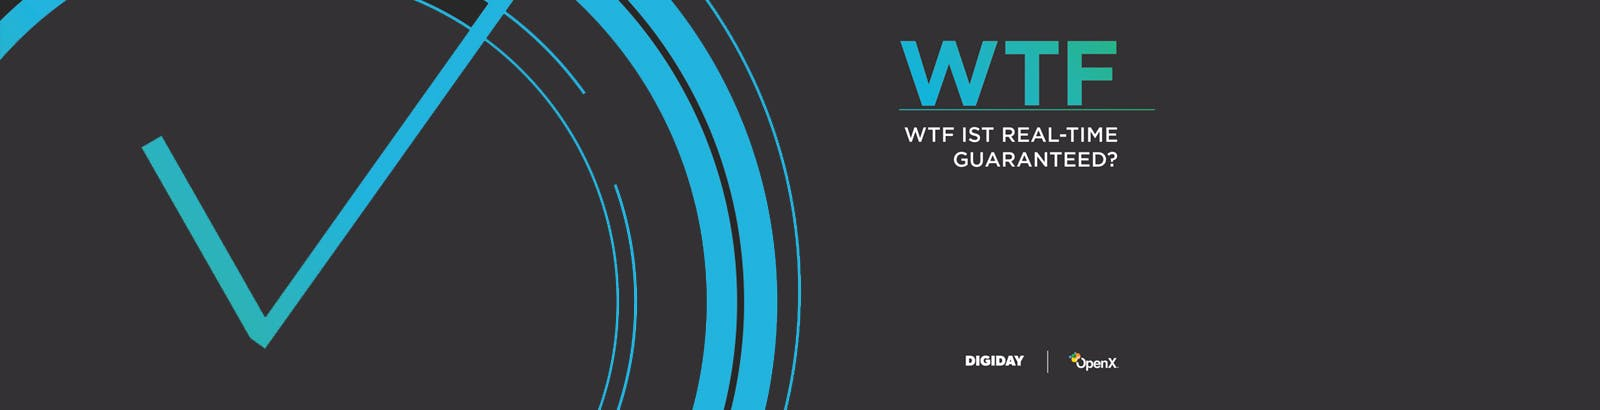 OX WTFRTG DE Hero Cropped - WTF ist Real-Time Guaranteed?